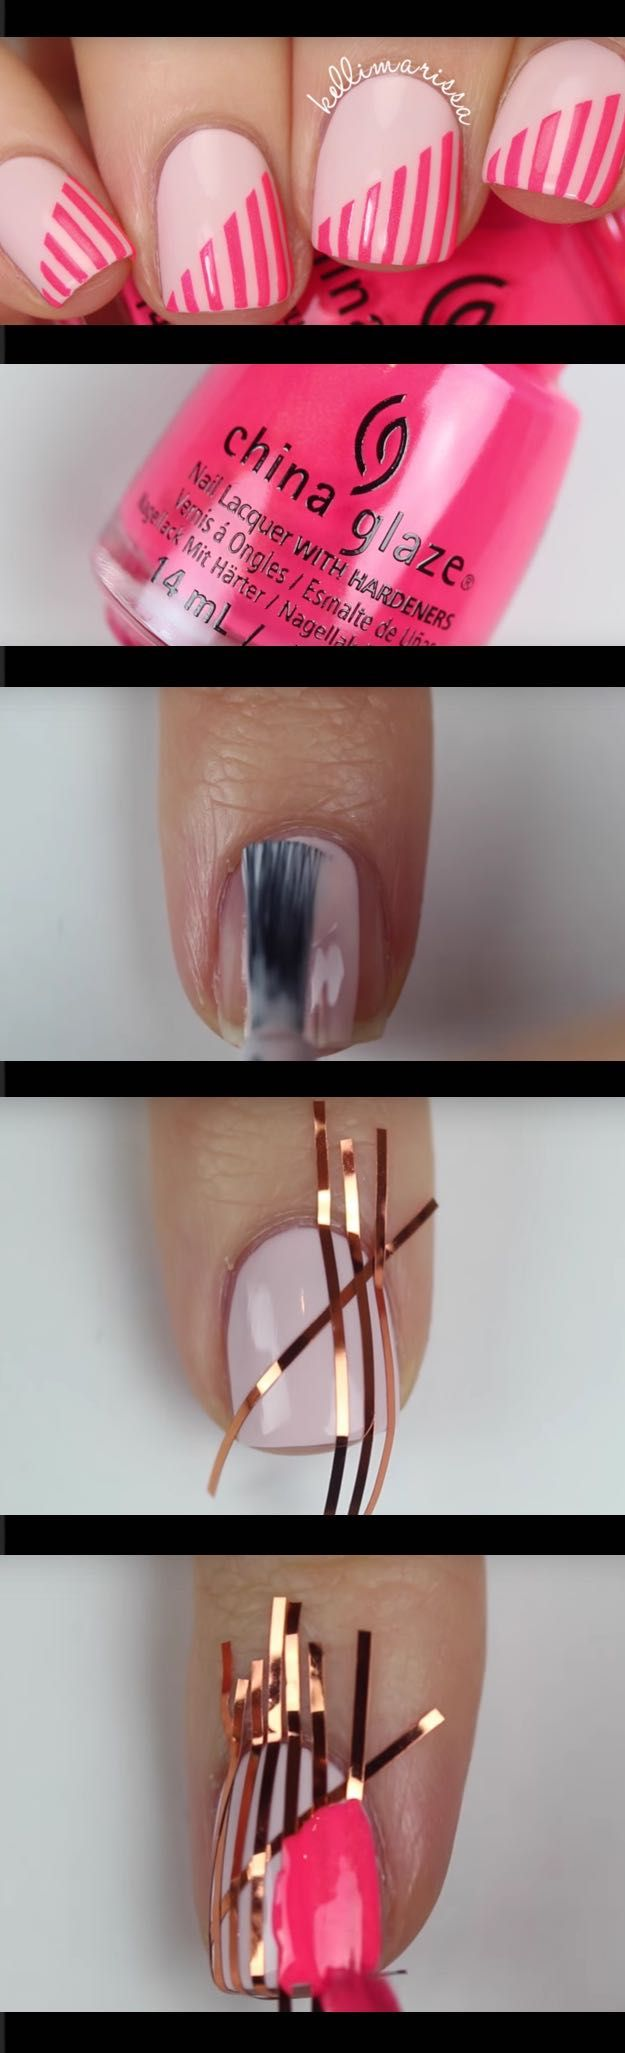 Super Easy Nail Art Ideas for Beginners - DIY Beginner Striping Tape Nail  Art Tutorial KELLI - 41 Super Easy Nail Art Ideas For Beginners DIY Nails Pinterest